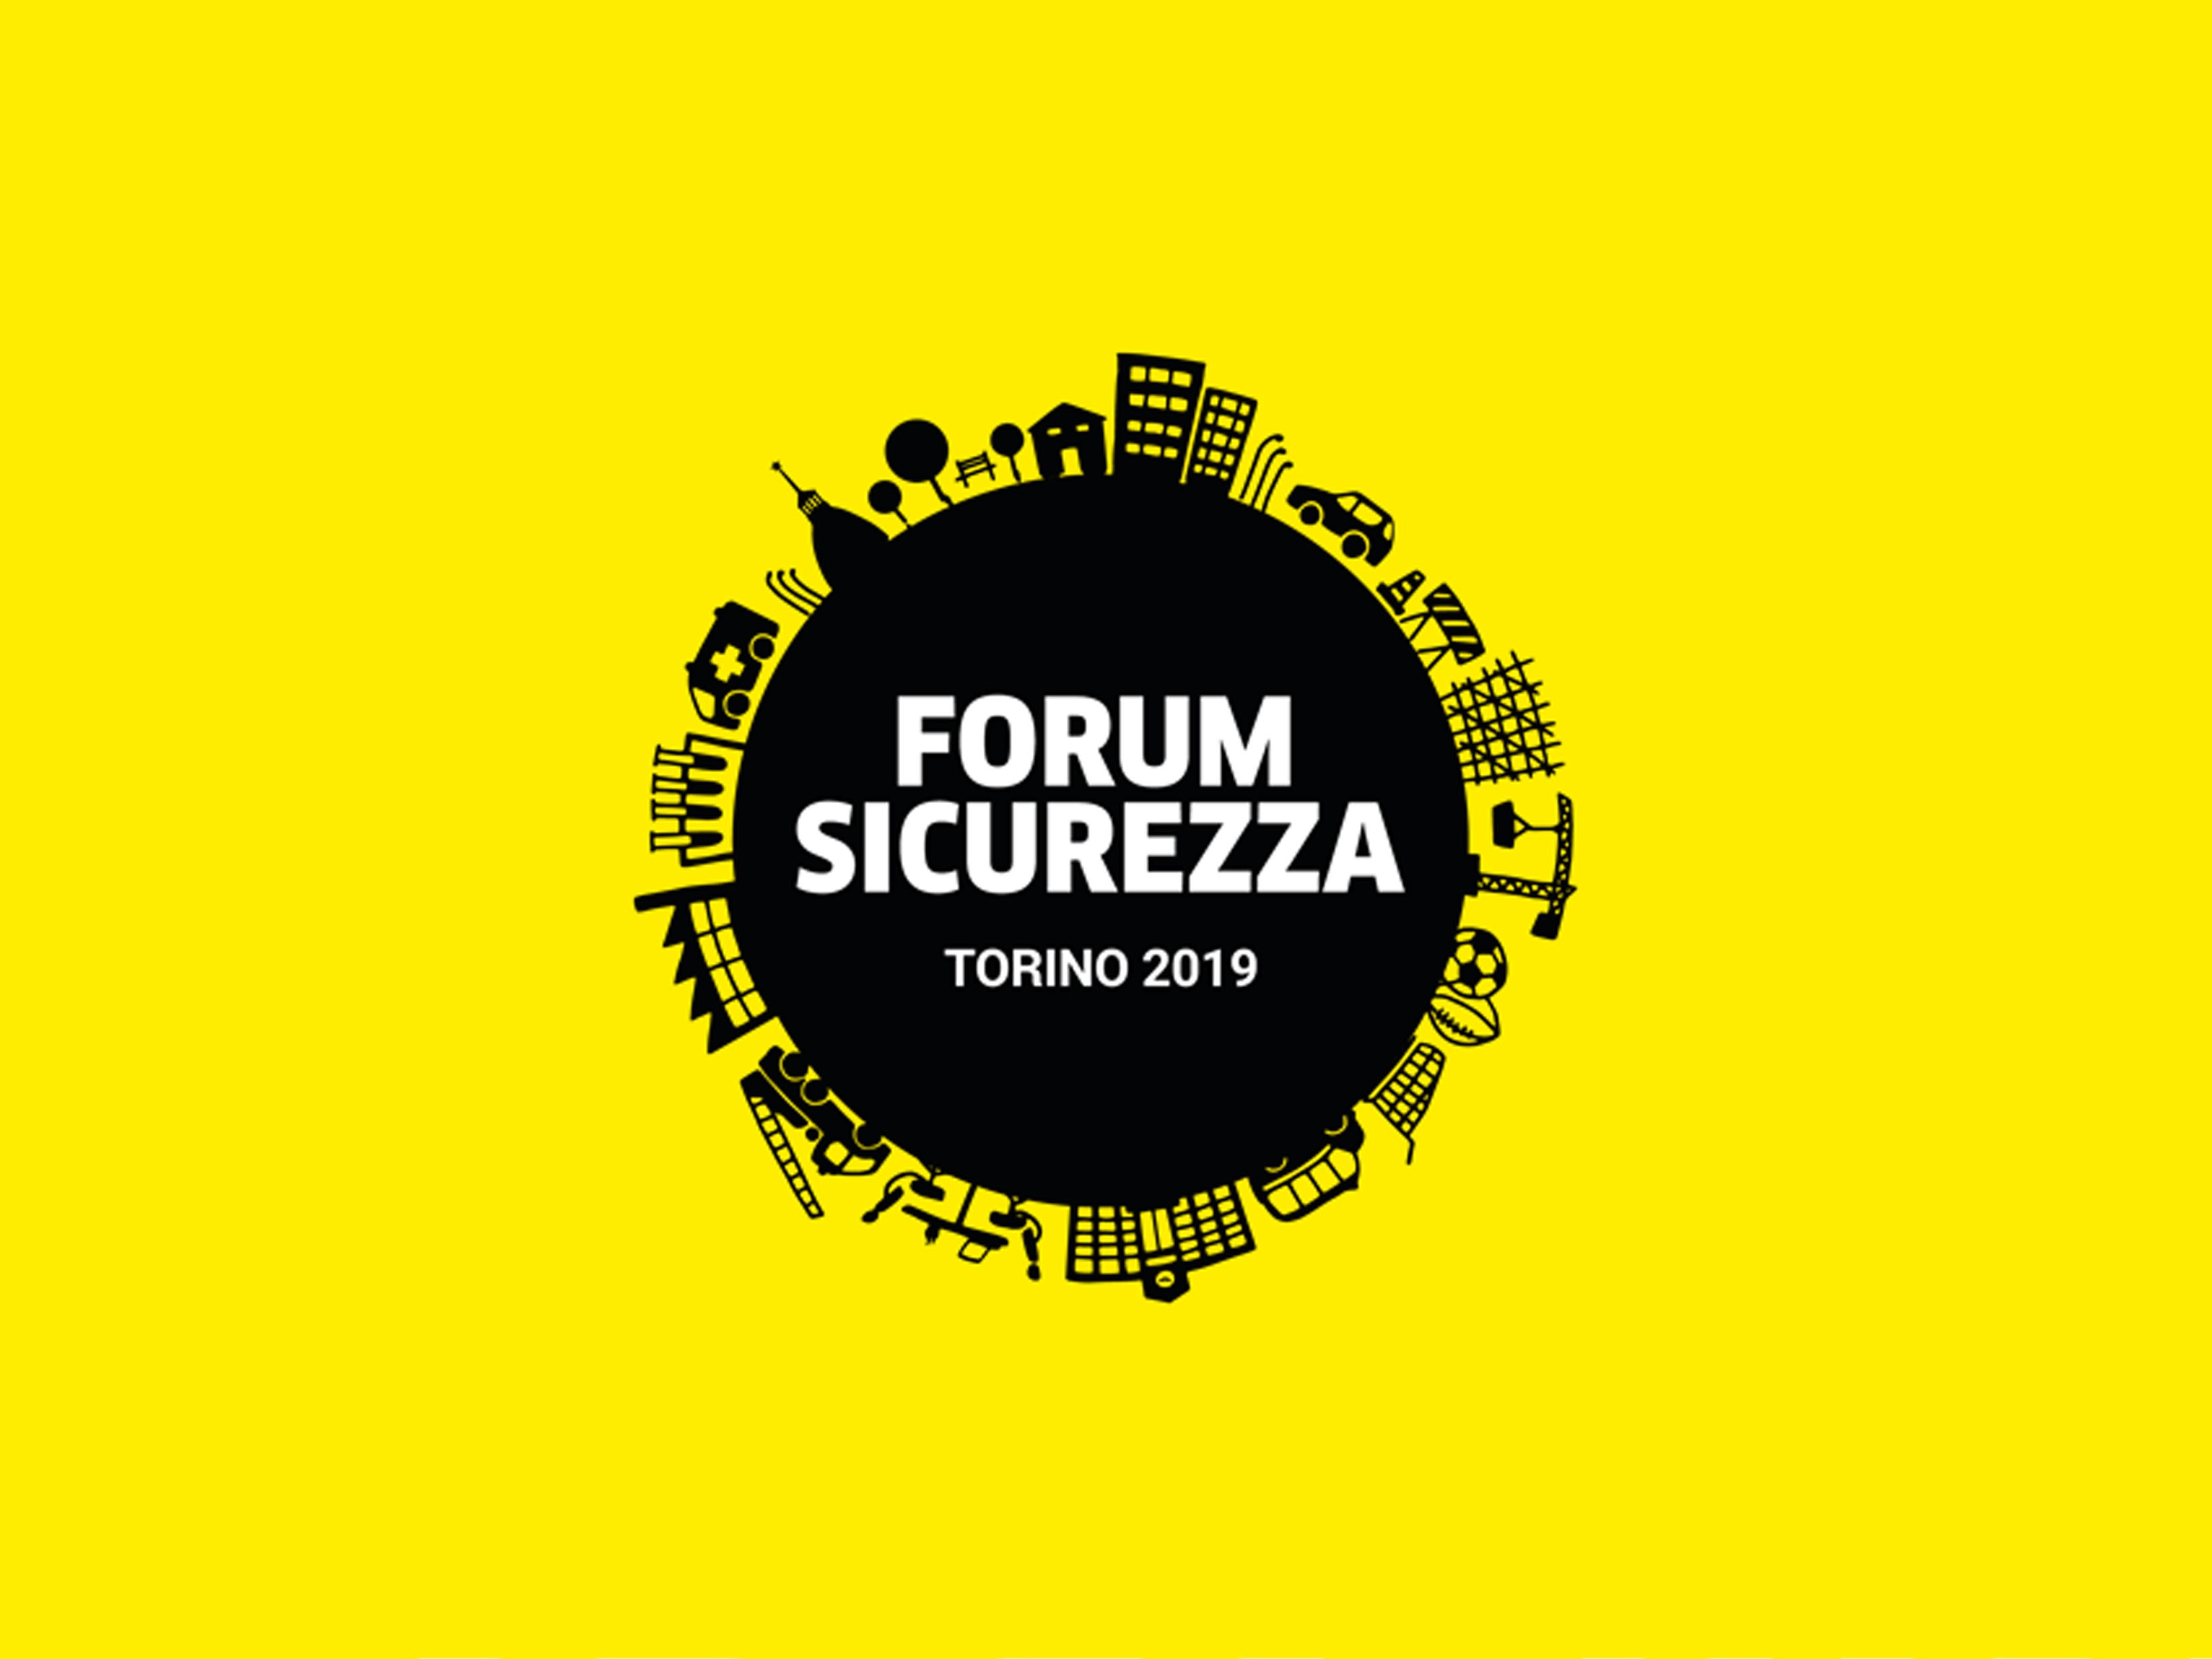 FORUM SICUREZZA 2019